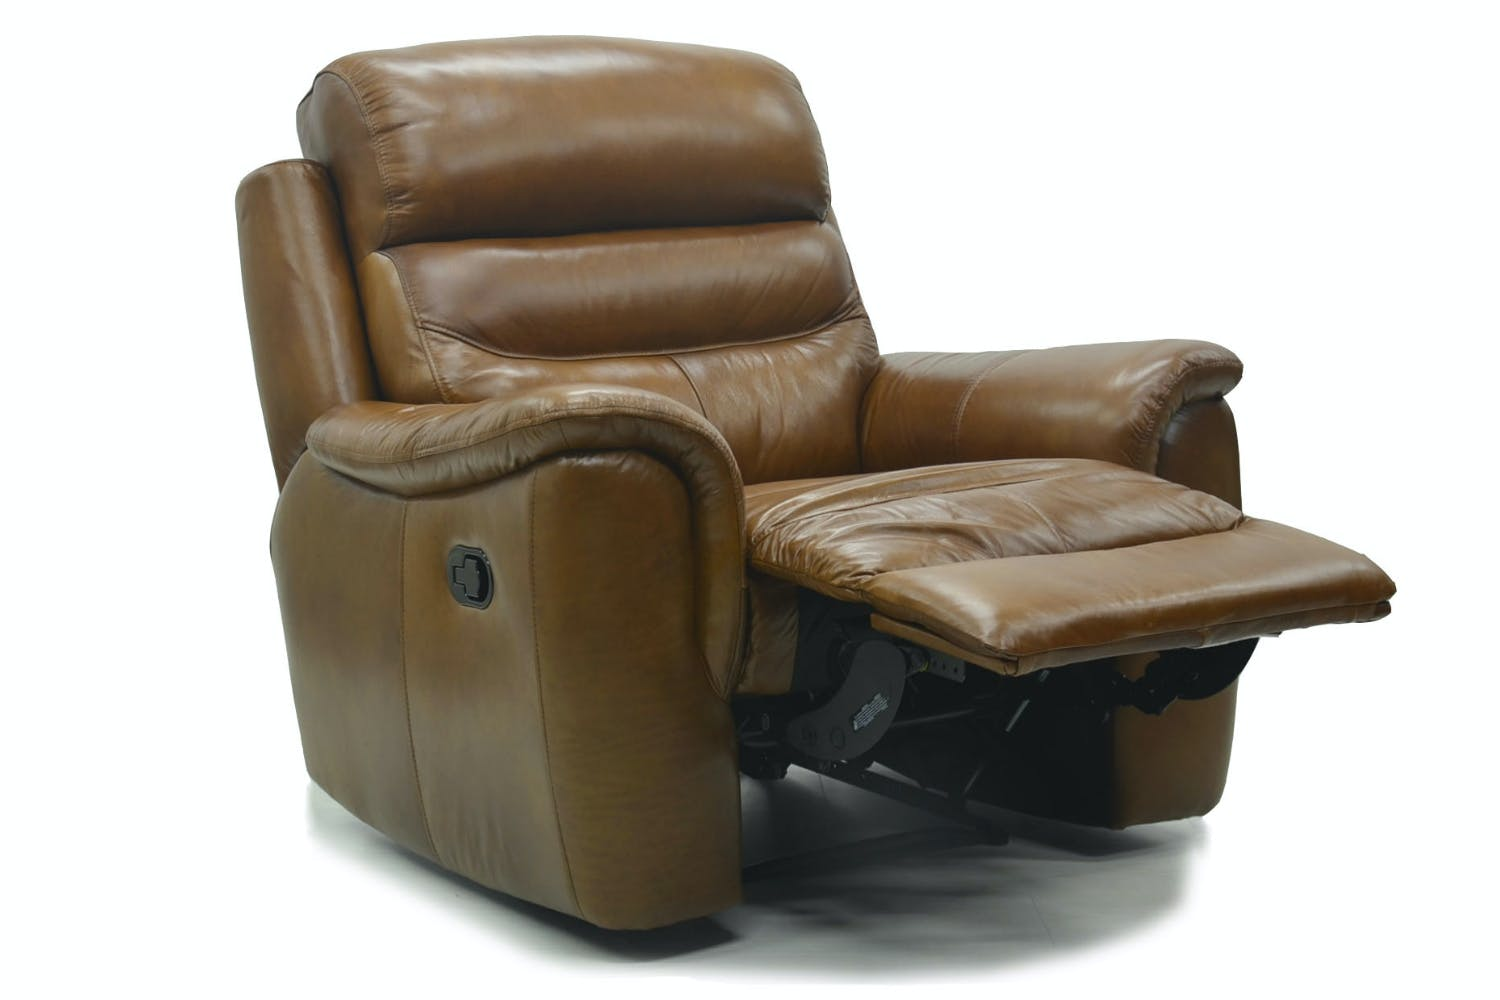 Bayle leather electric recliner saddle